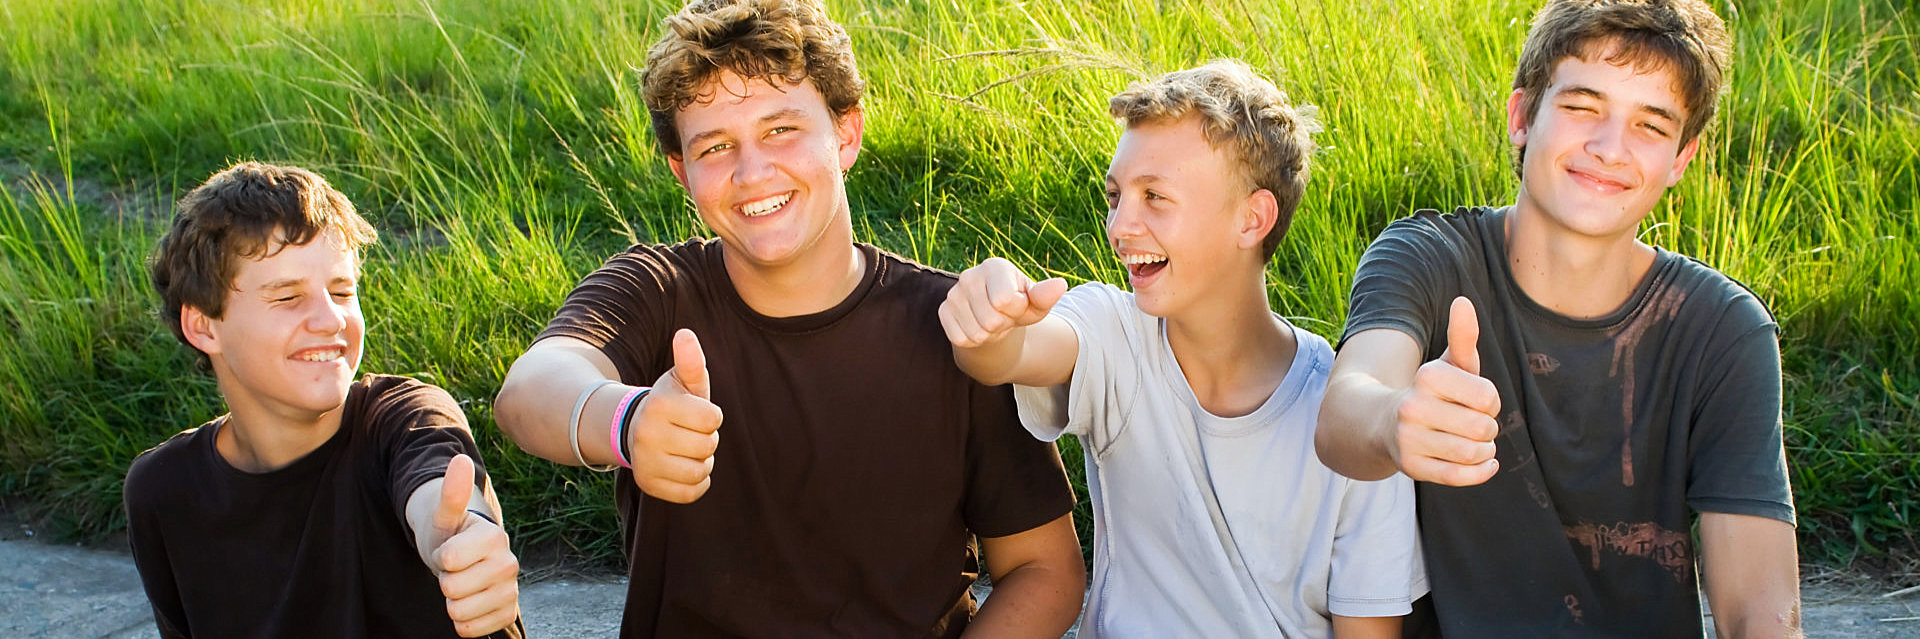 teenagers showing their thumbs up